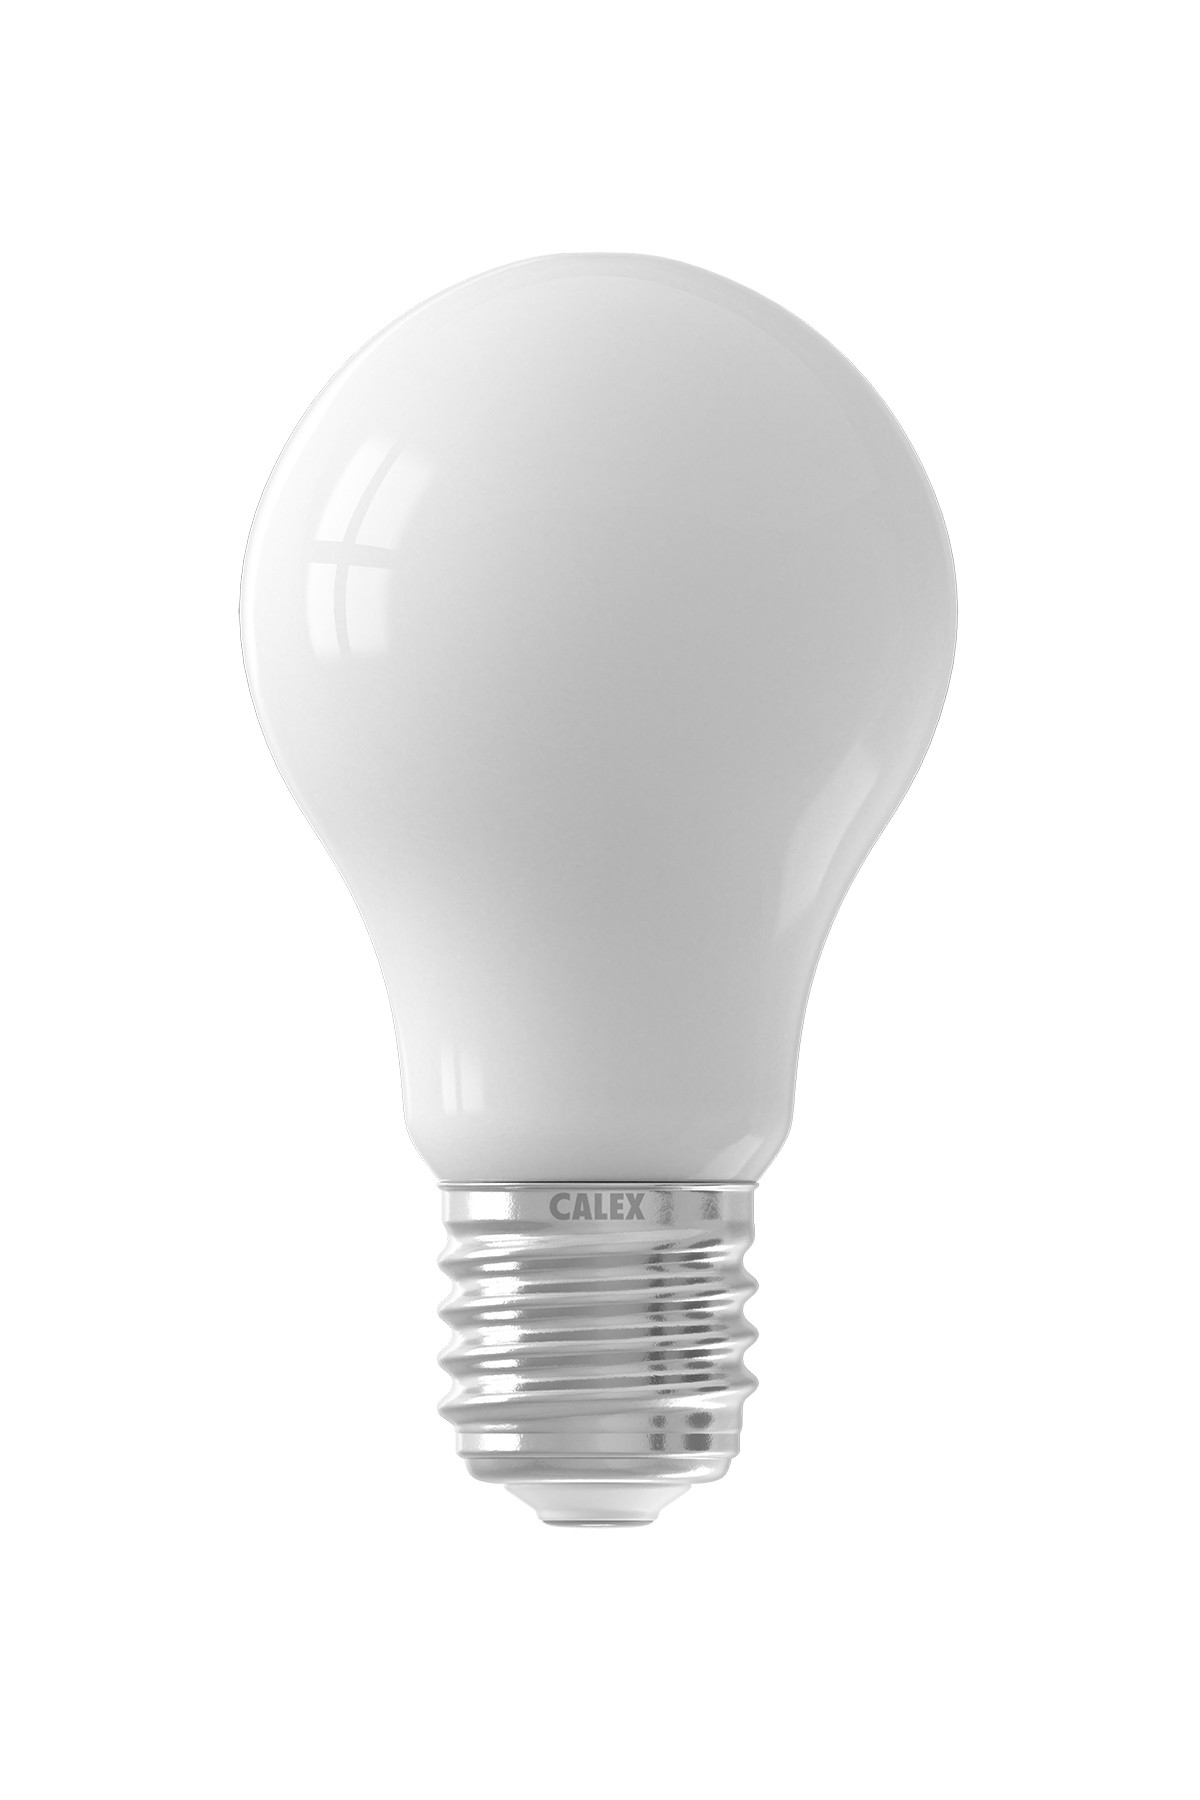 LED filament standaardlamp dimbaar 240V 4,0W A60 Softline